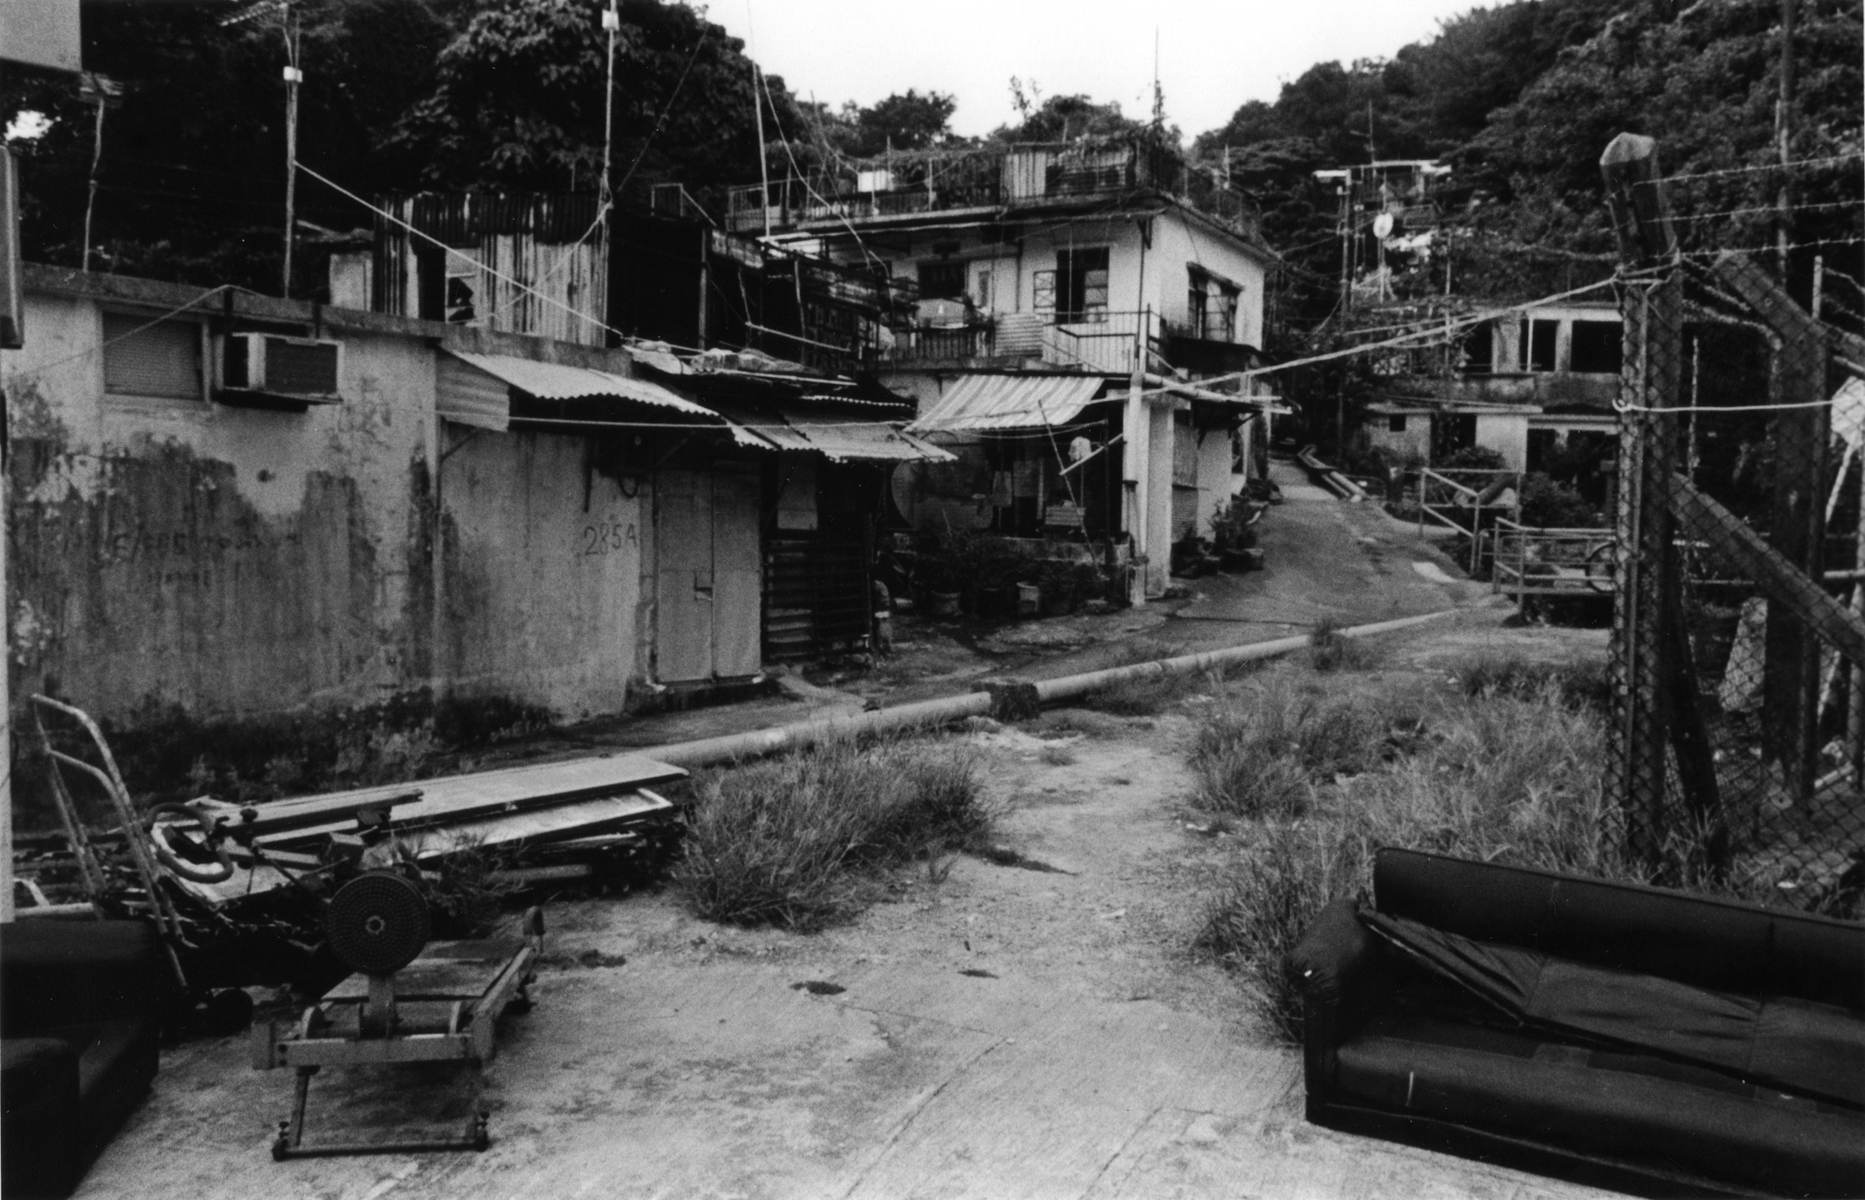 A neighborhood in the Lei Yue Mun District of Hong Kong, which is known for its seafood market and fishing villages. Kowloon Peninsula, Hong Kong